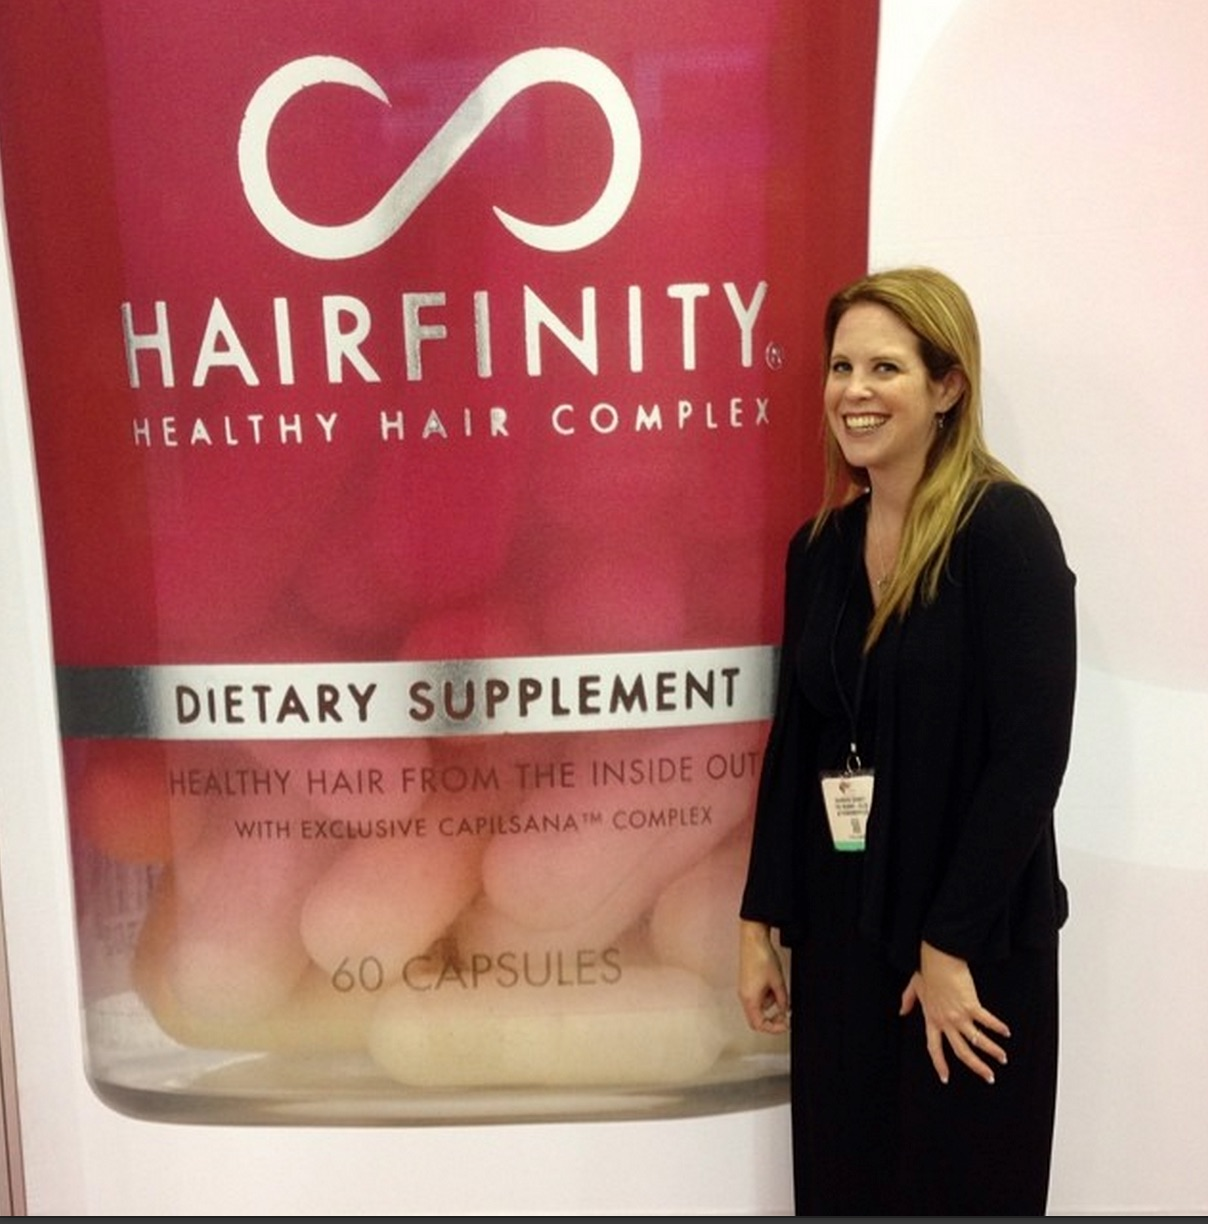 #HairfinityStyle #Beauty #Hair #BBloggers #ad